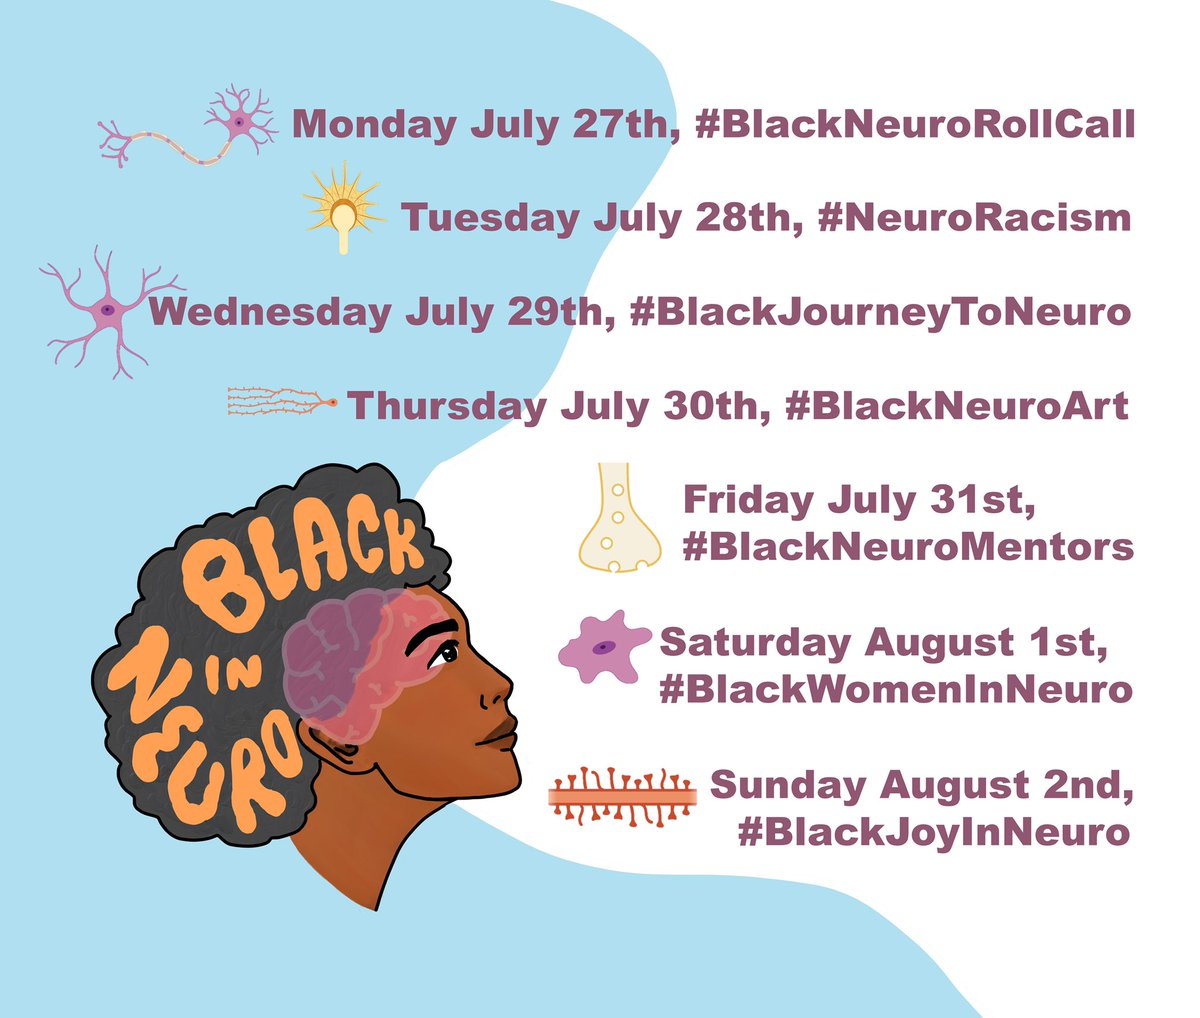 🗣🗣🗣  It's FINALLY here!   Check out the official #BlackInNeuroWeek schedule below.   More details coming soon 🧠✊🏾 https://t.co/wEfShFtyk4